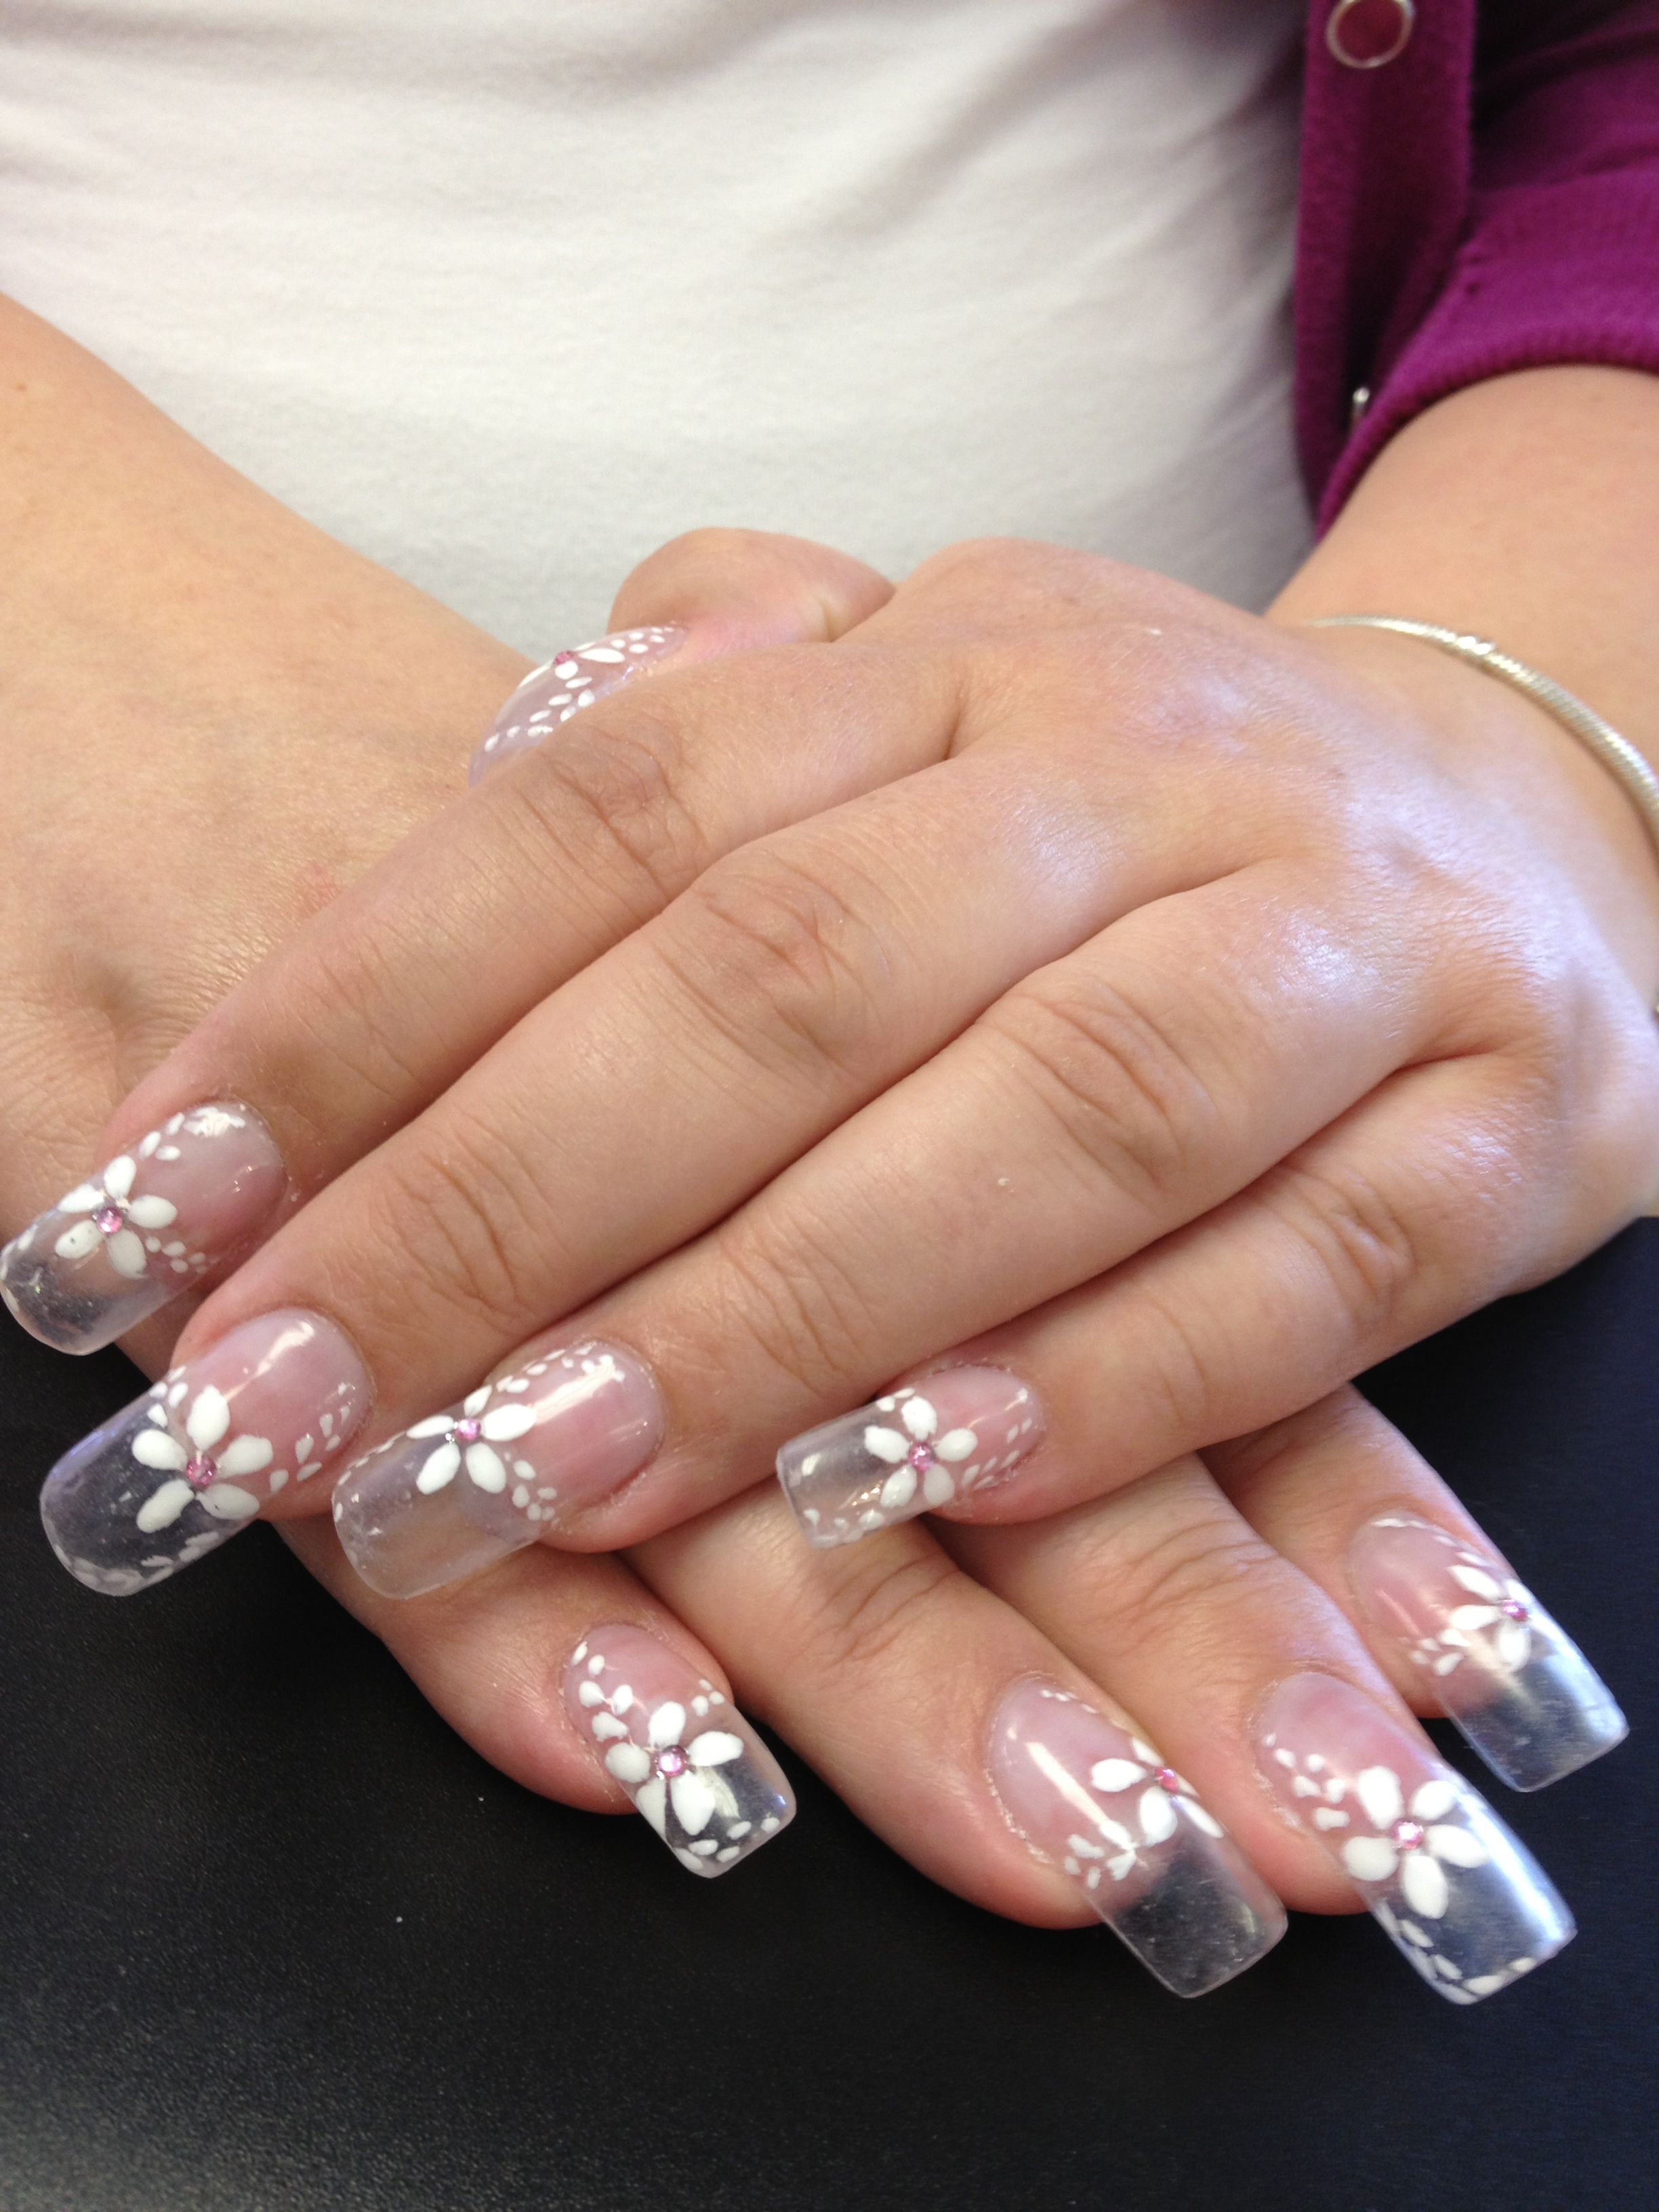 Solar nails clear tips with white flower designs #elegant #bridal ...